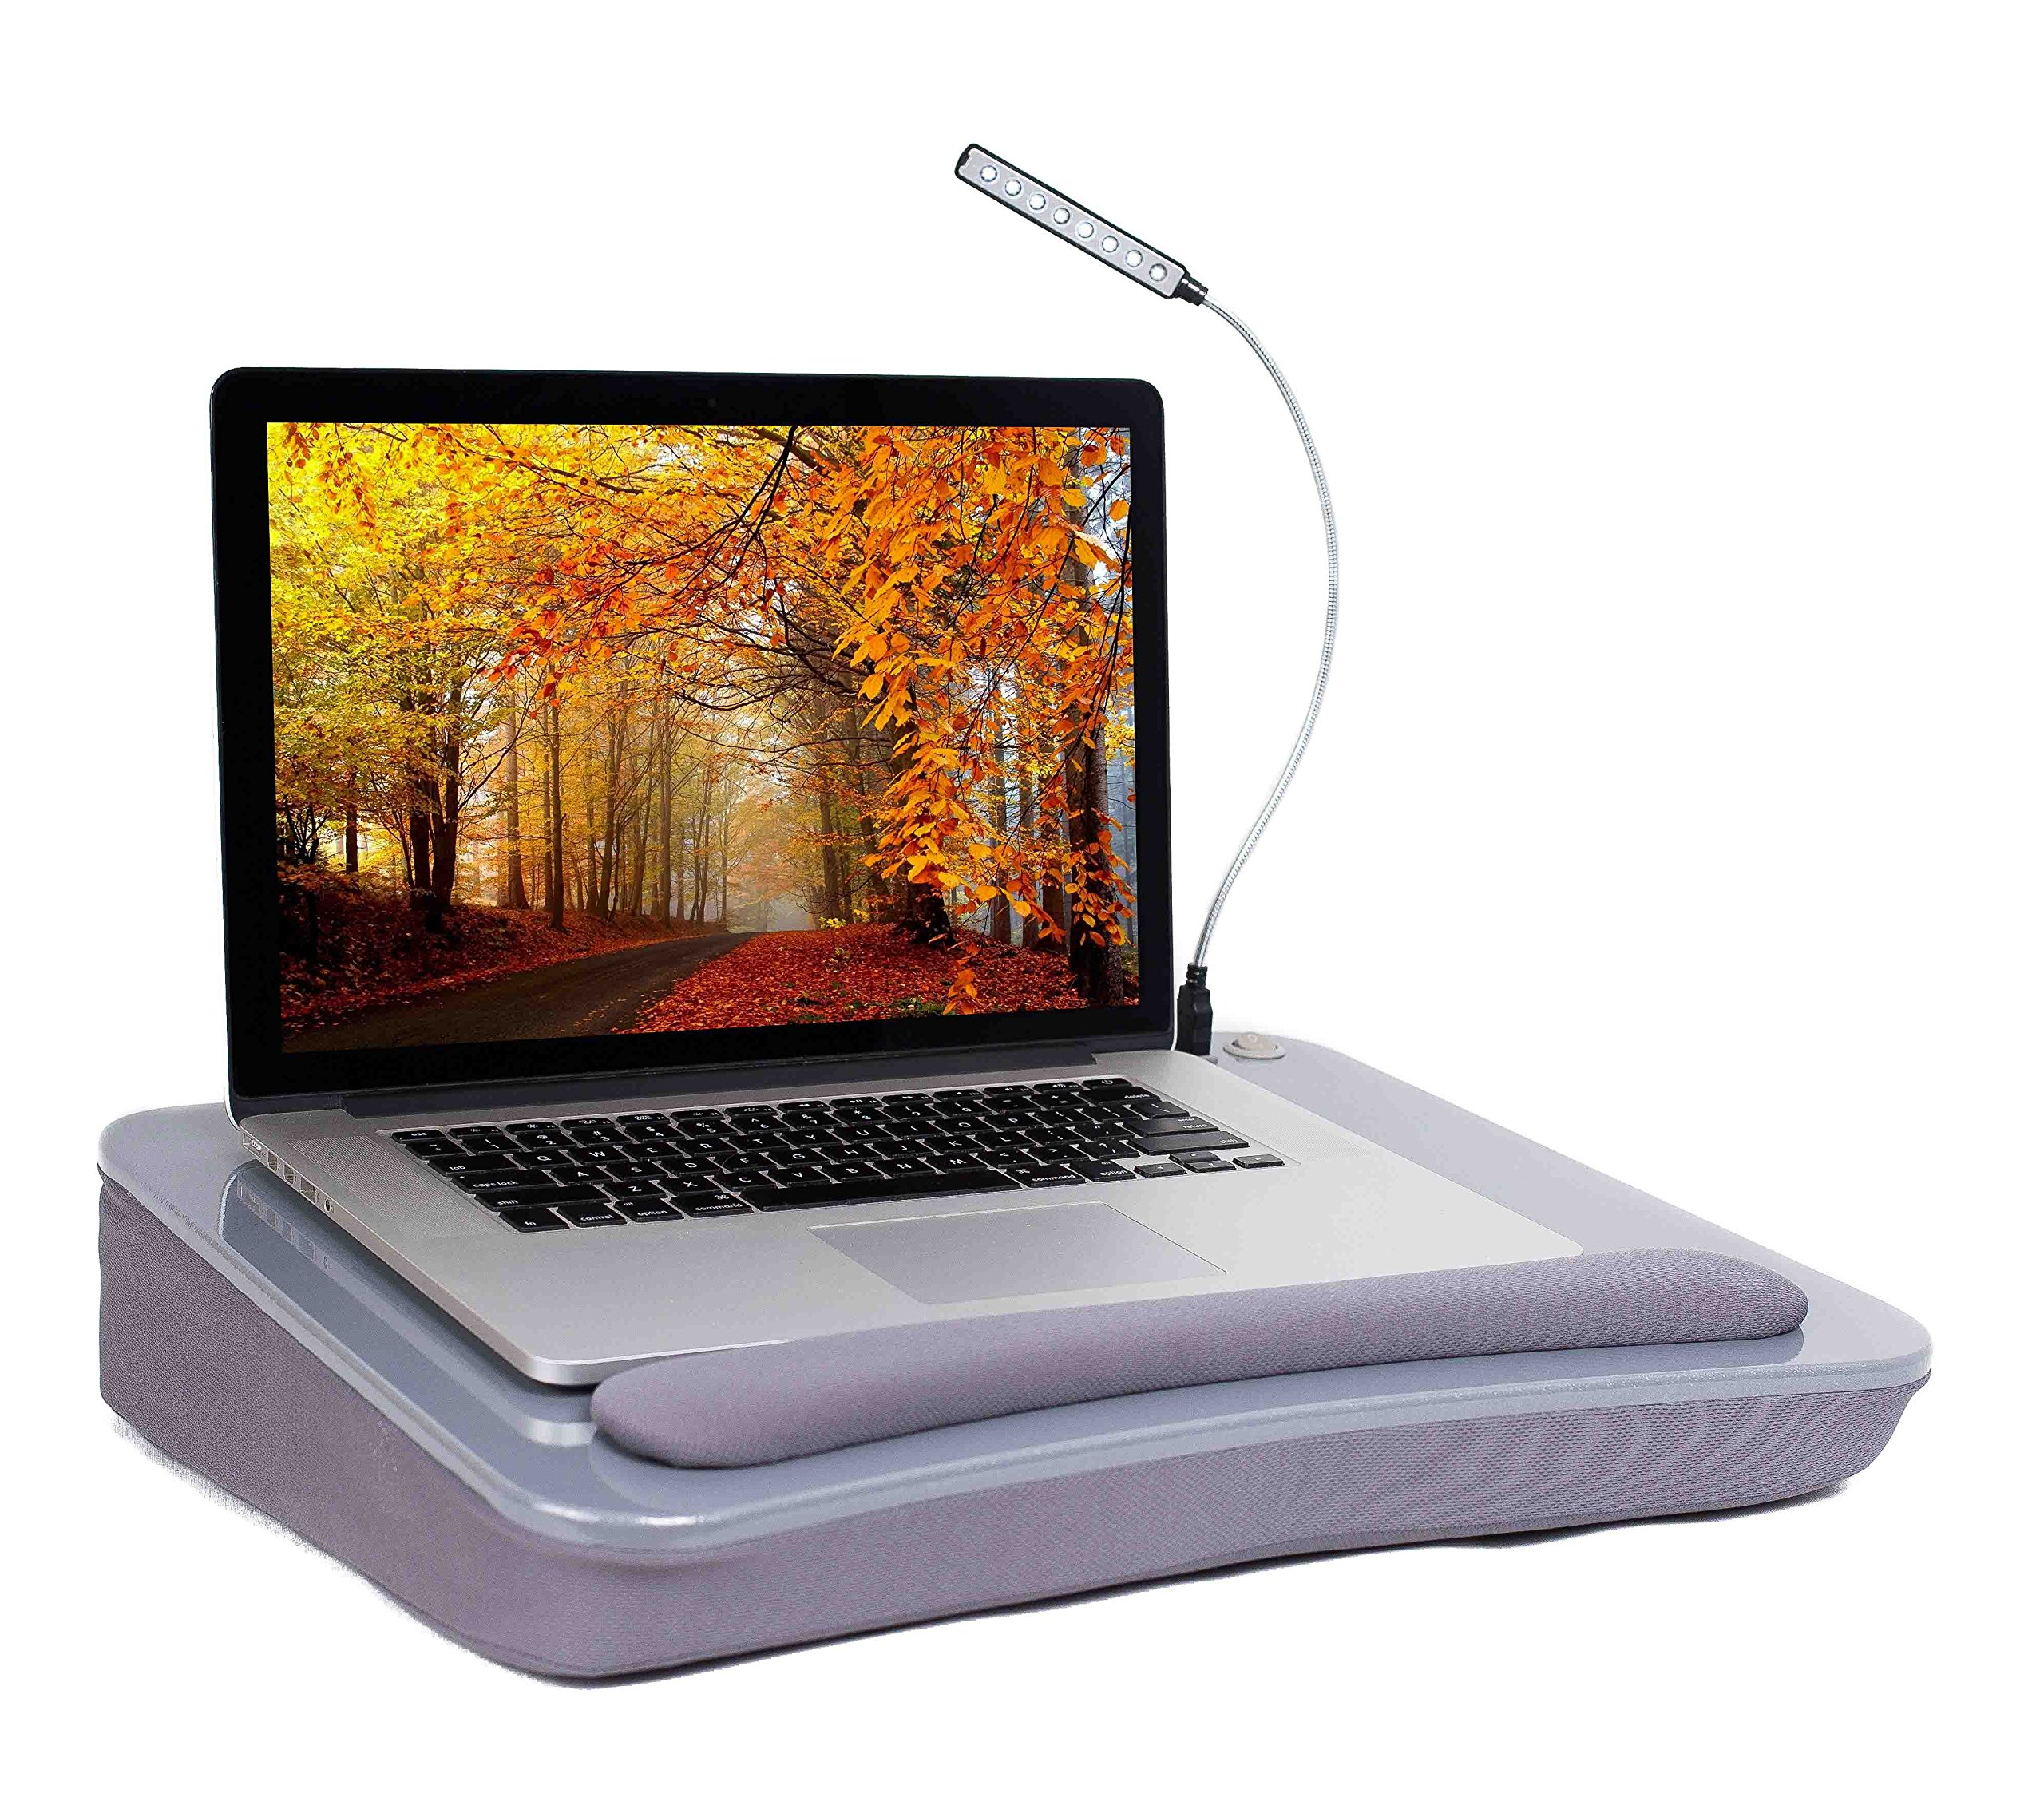 Sofia + Sam Lap Desk with USB Light (Silver)   Memory Foam Cushion   Supports Laptops Up To 17 Inches